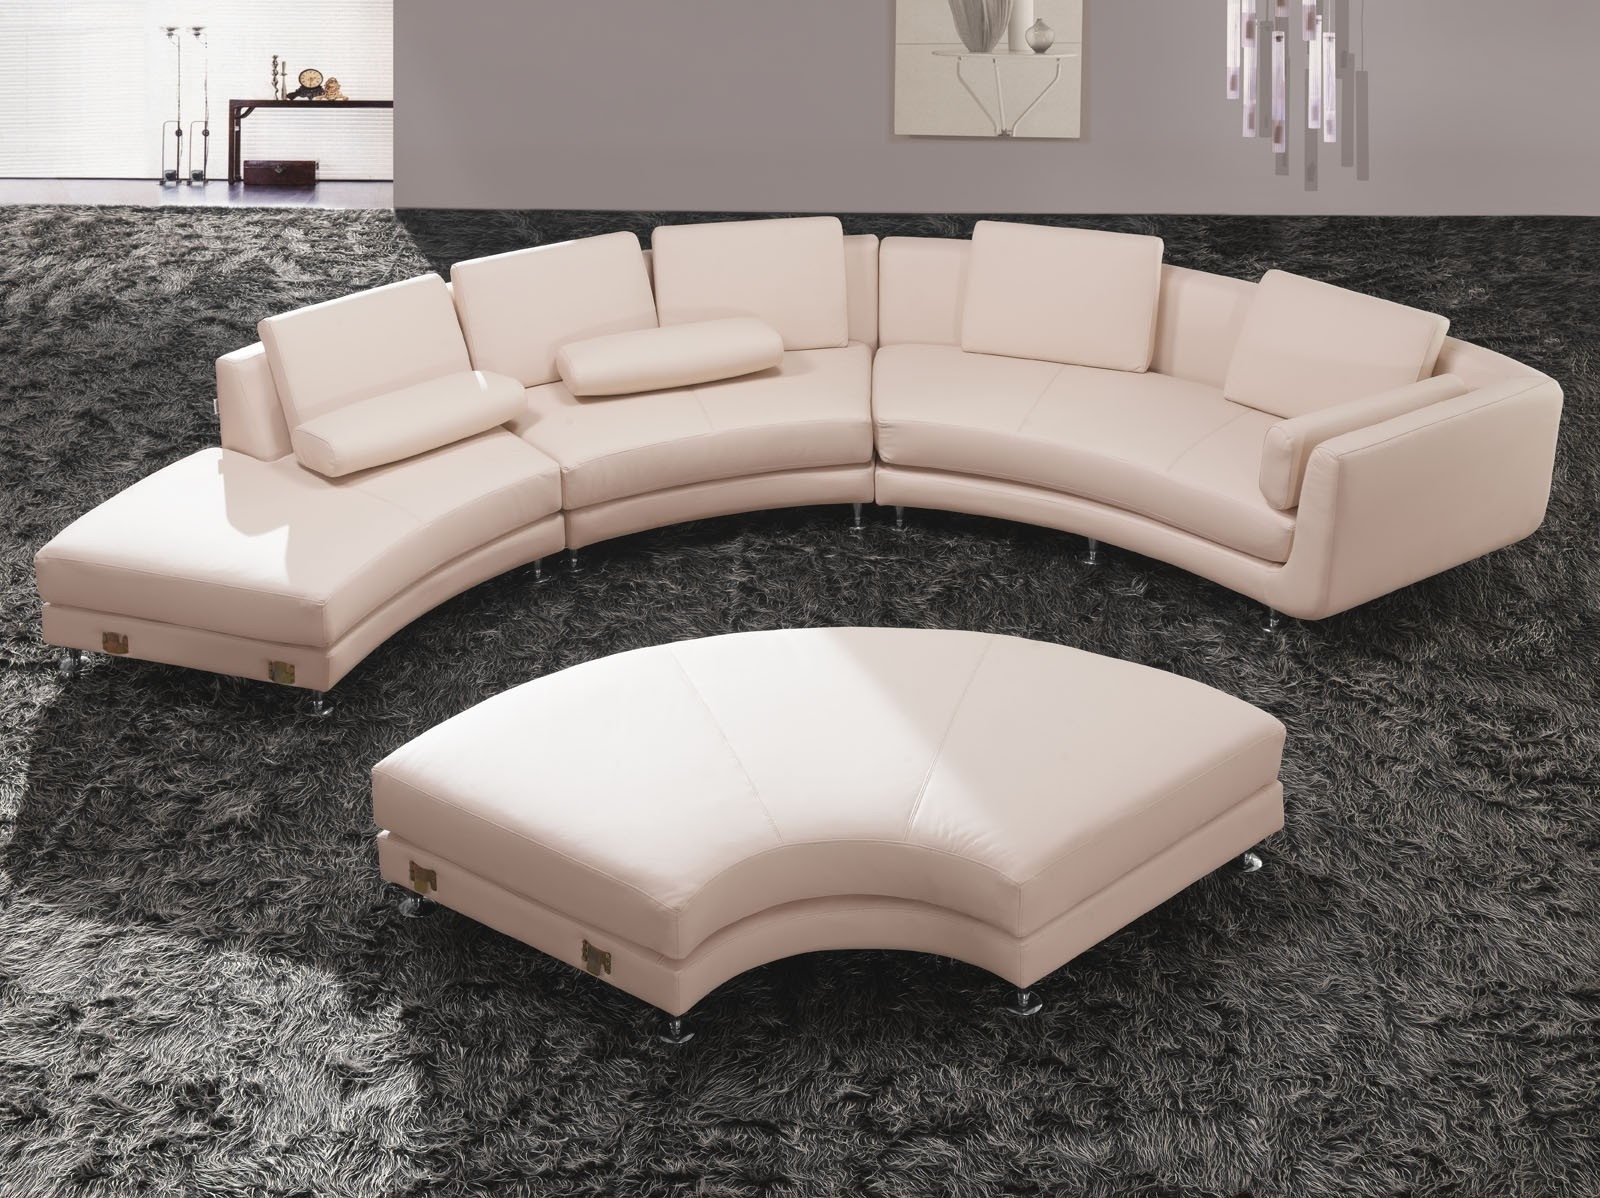 Best And Newest Sofa : Glamorous Round Sectional Sofa Bed Curved Leather Tufted With Circular Sectional Sofas (View 2 of 15)